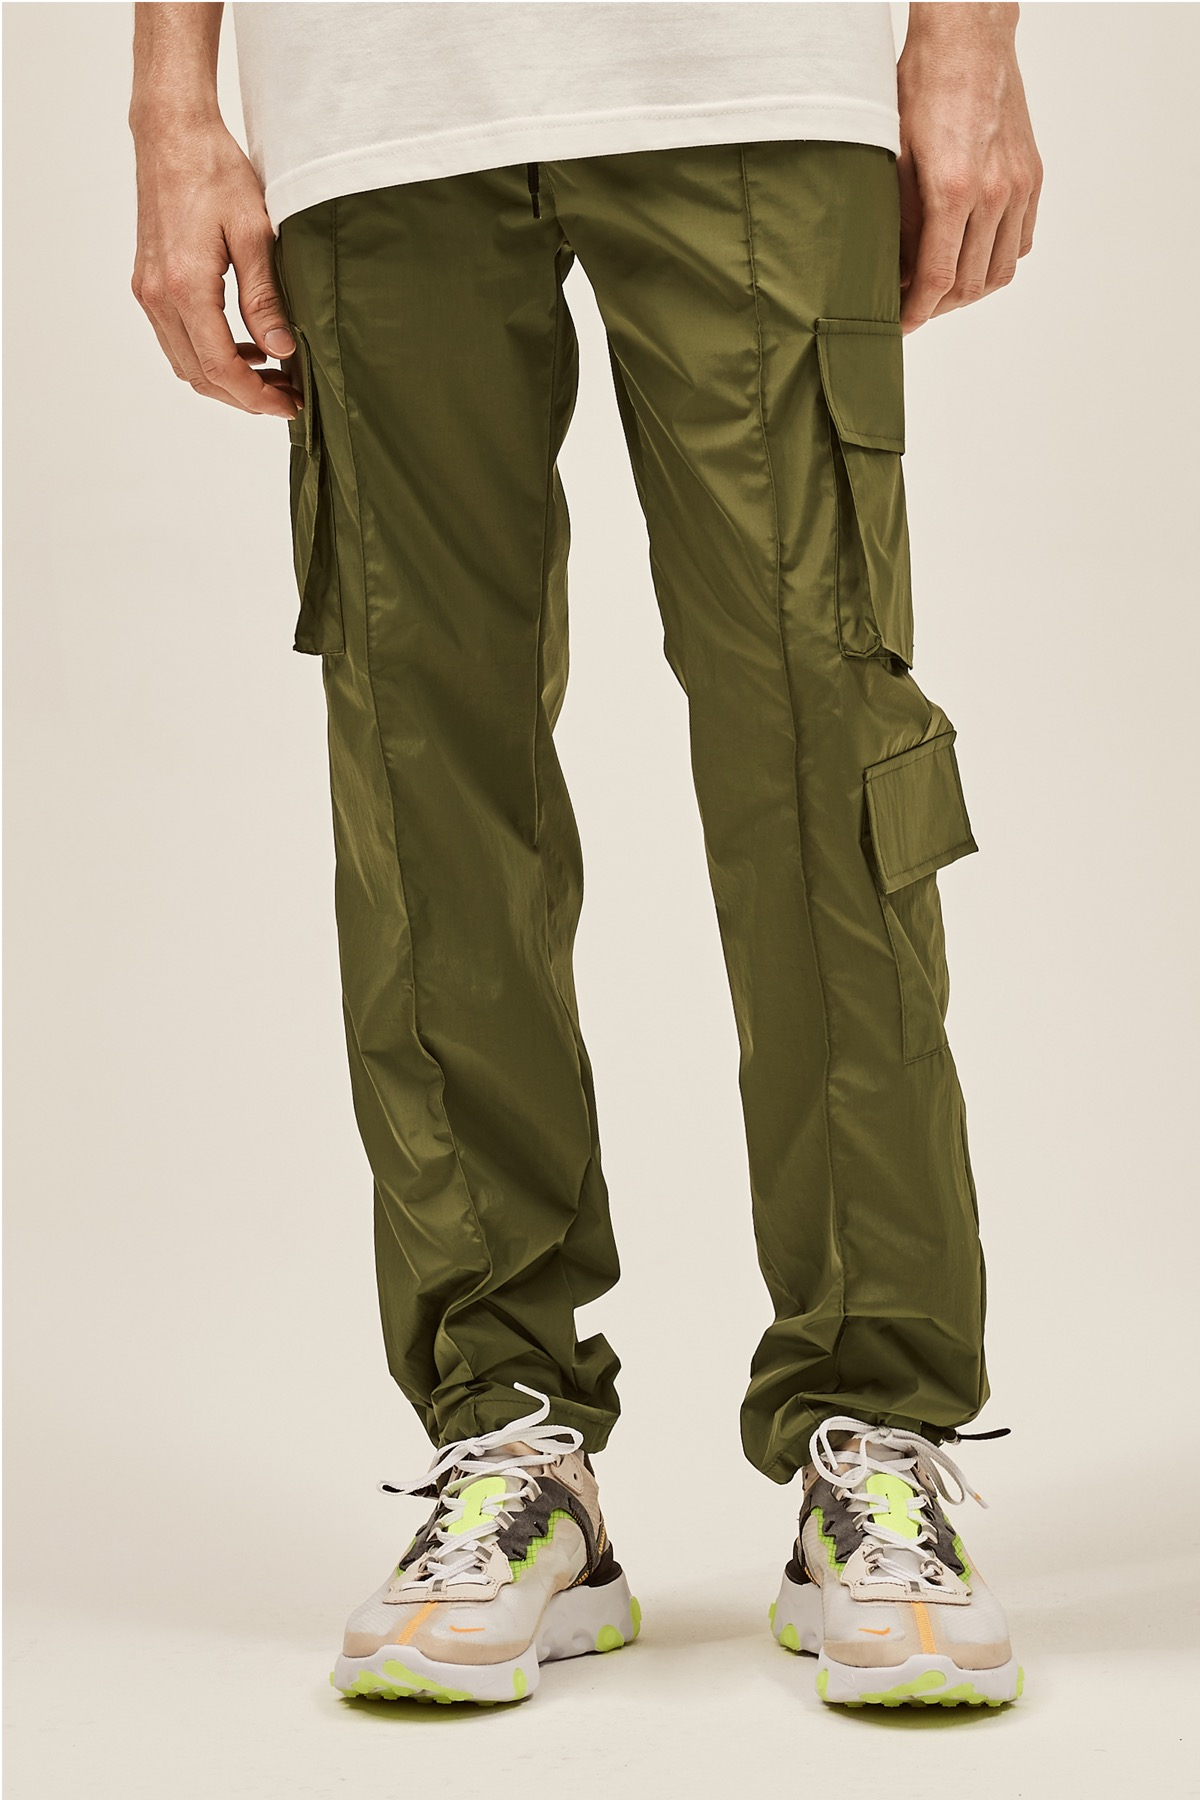 KHAKI NYLON METAL CARGO STRING PANTS